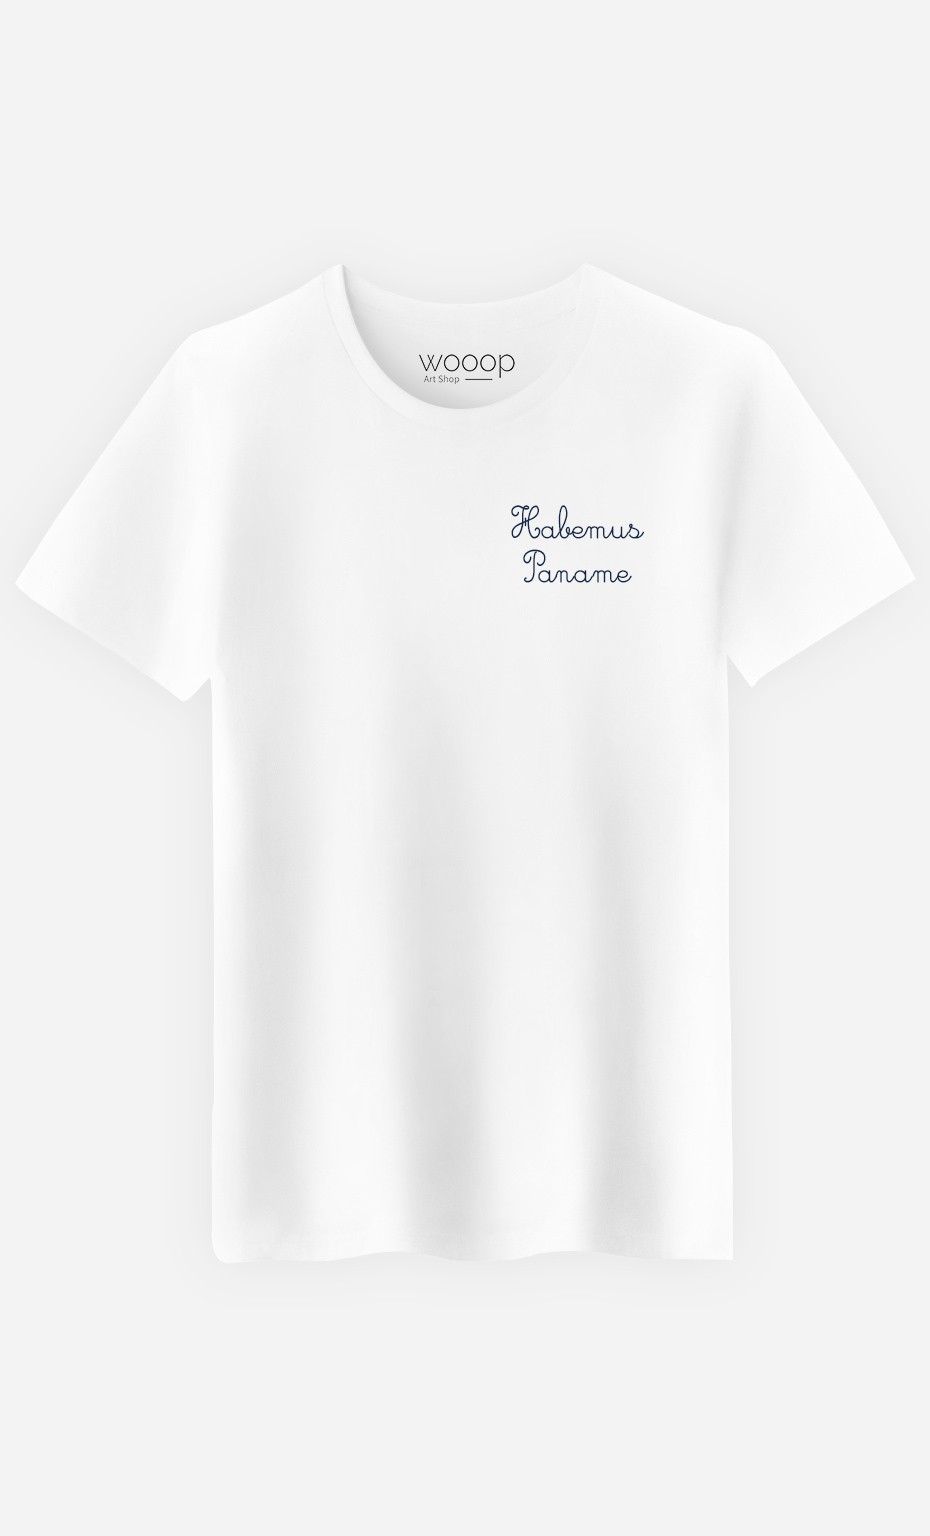 T-Shirt Homme Habemus Paname - Brodé